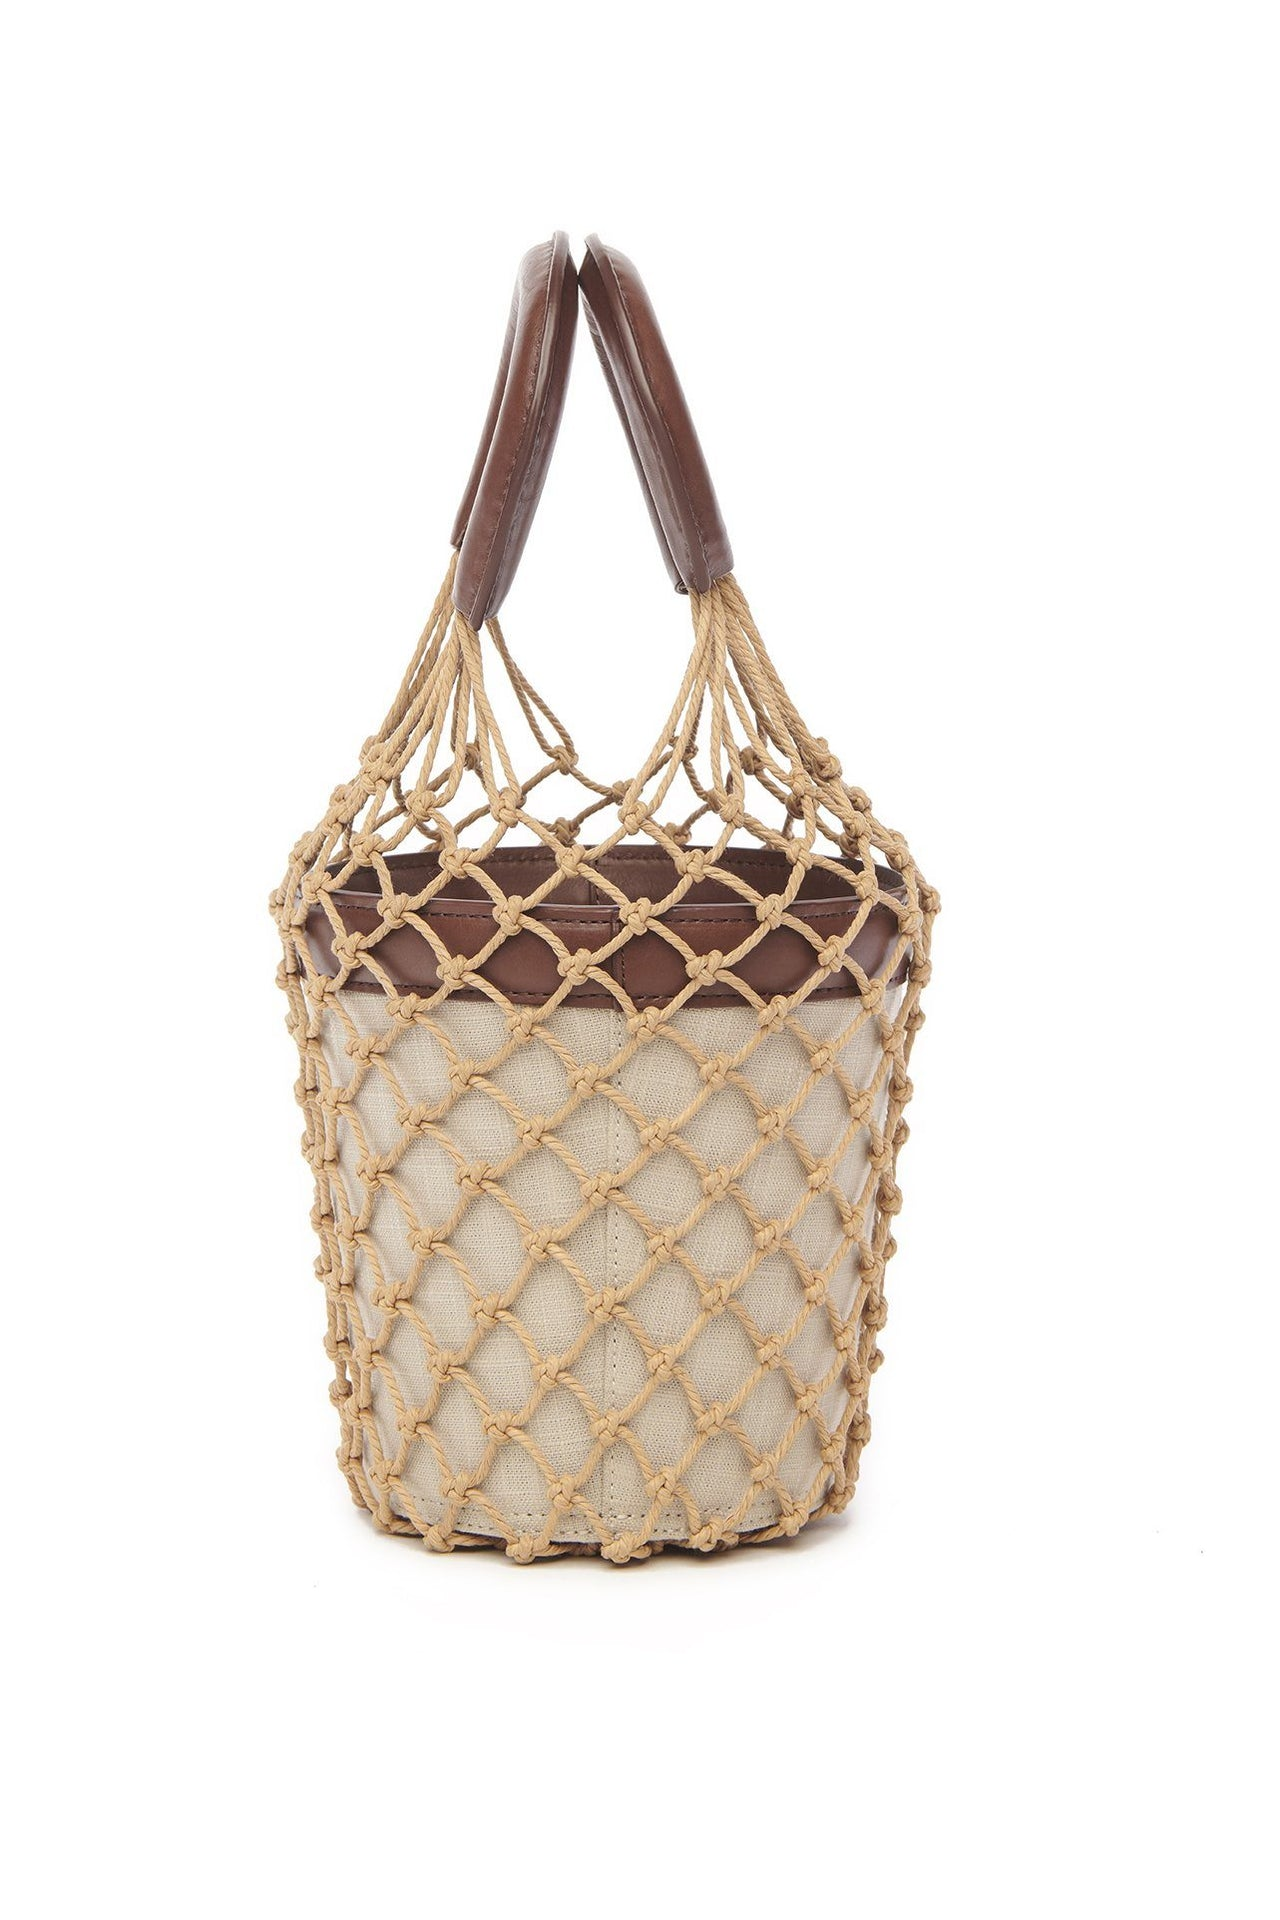 STAUD Moreau Bucket Bag Natural Chocolate